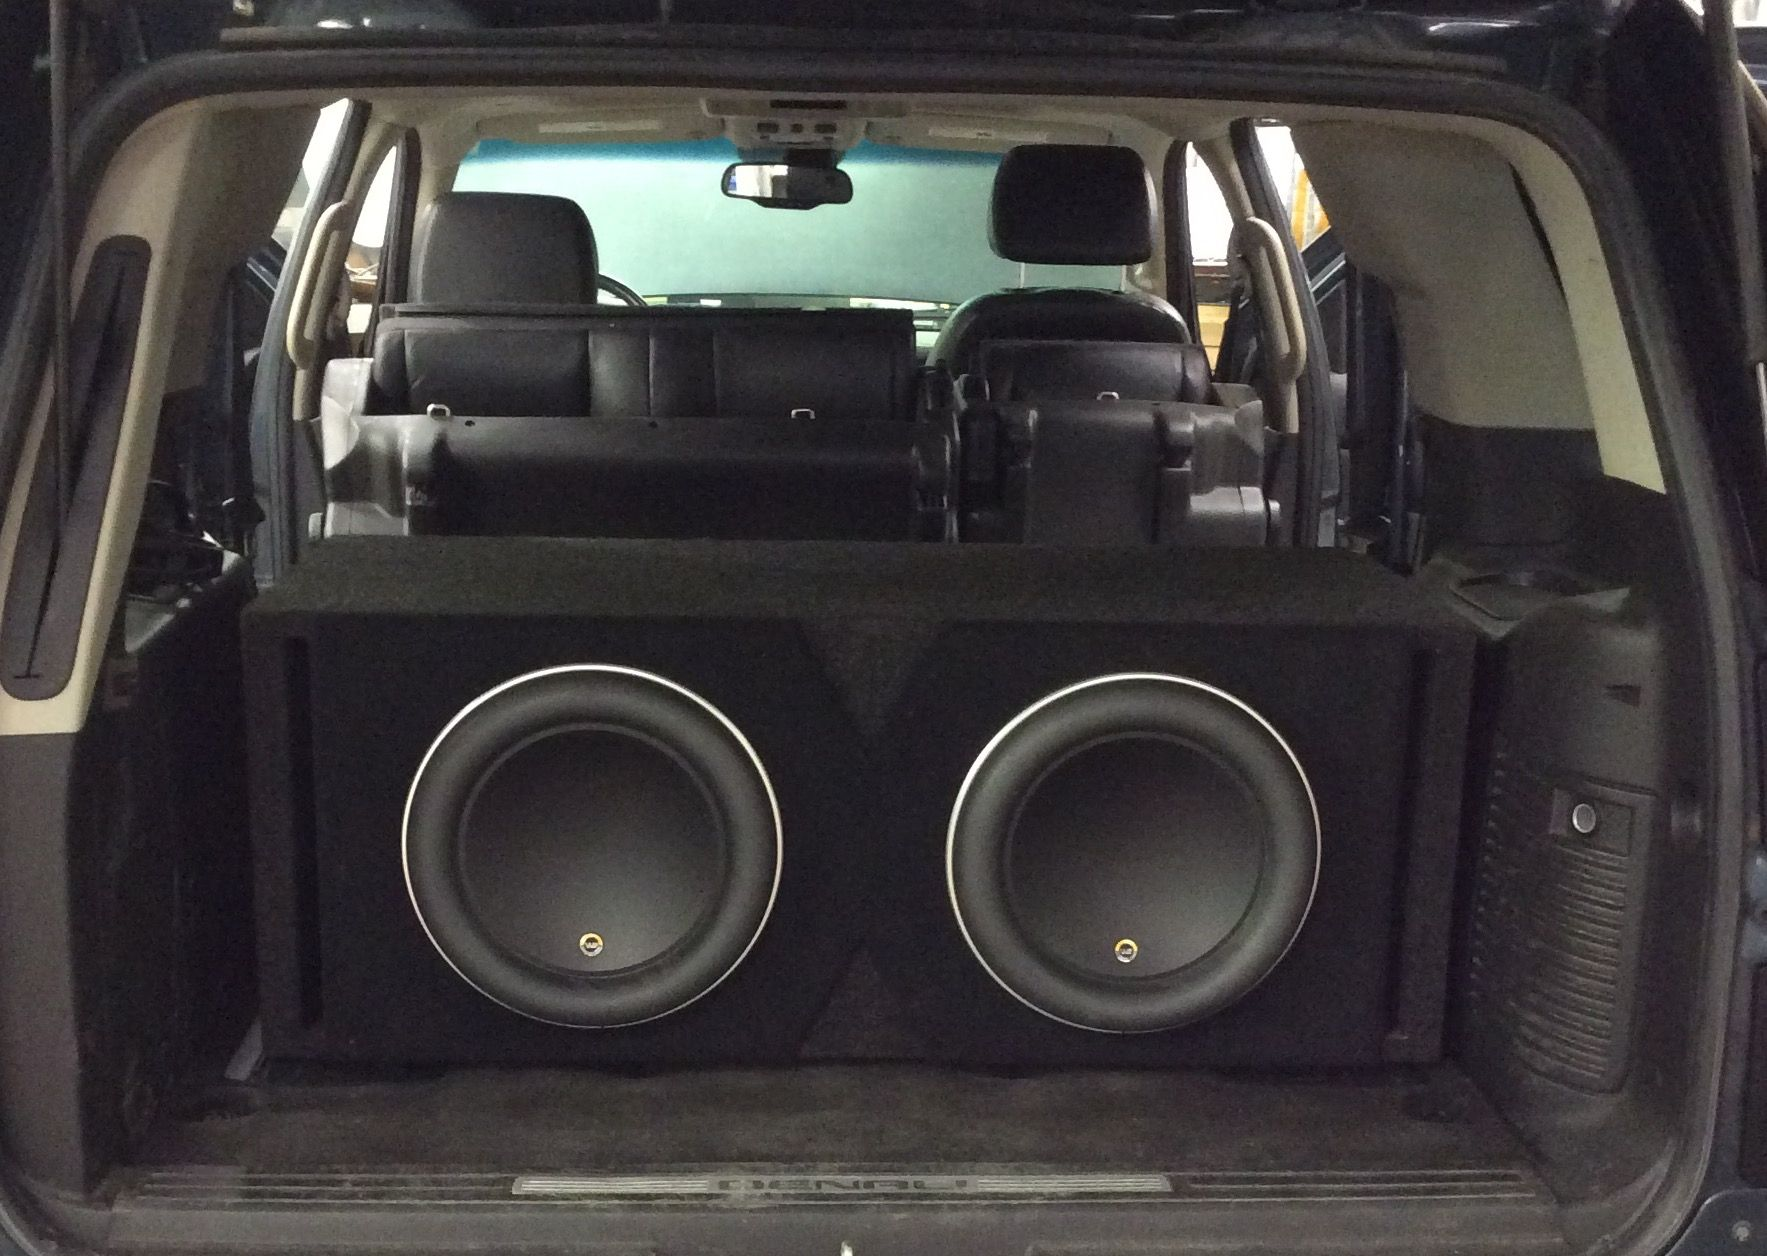 Do you need a unique custom-made subwoofer enclosure to fit ... | hummer h2 subwoofer box